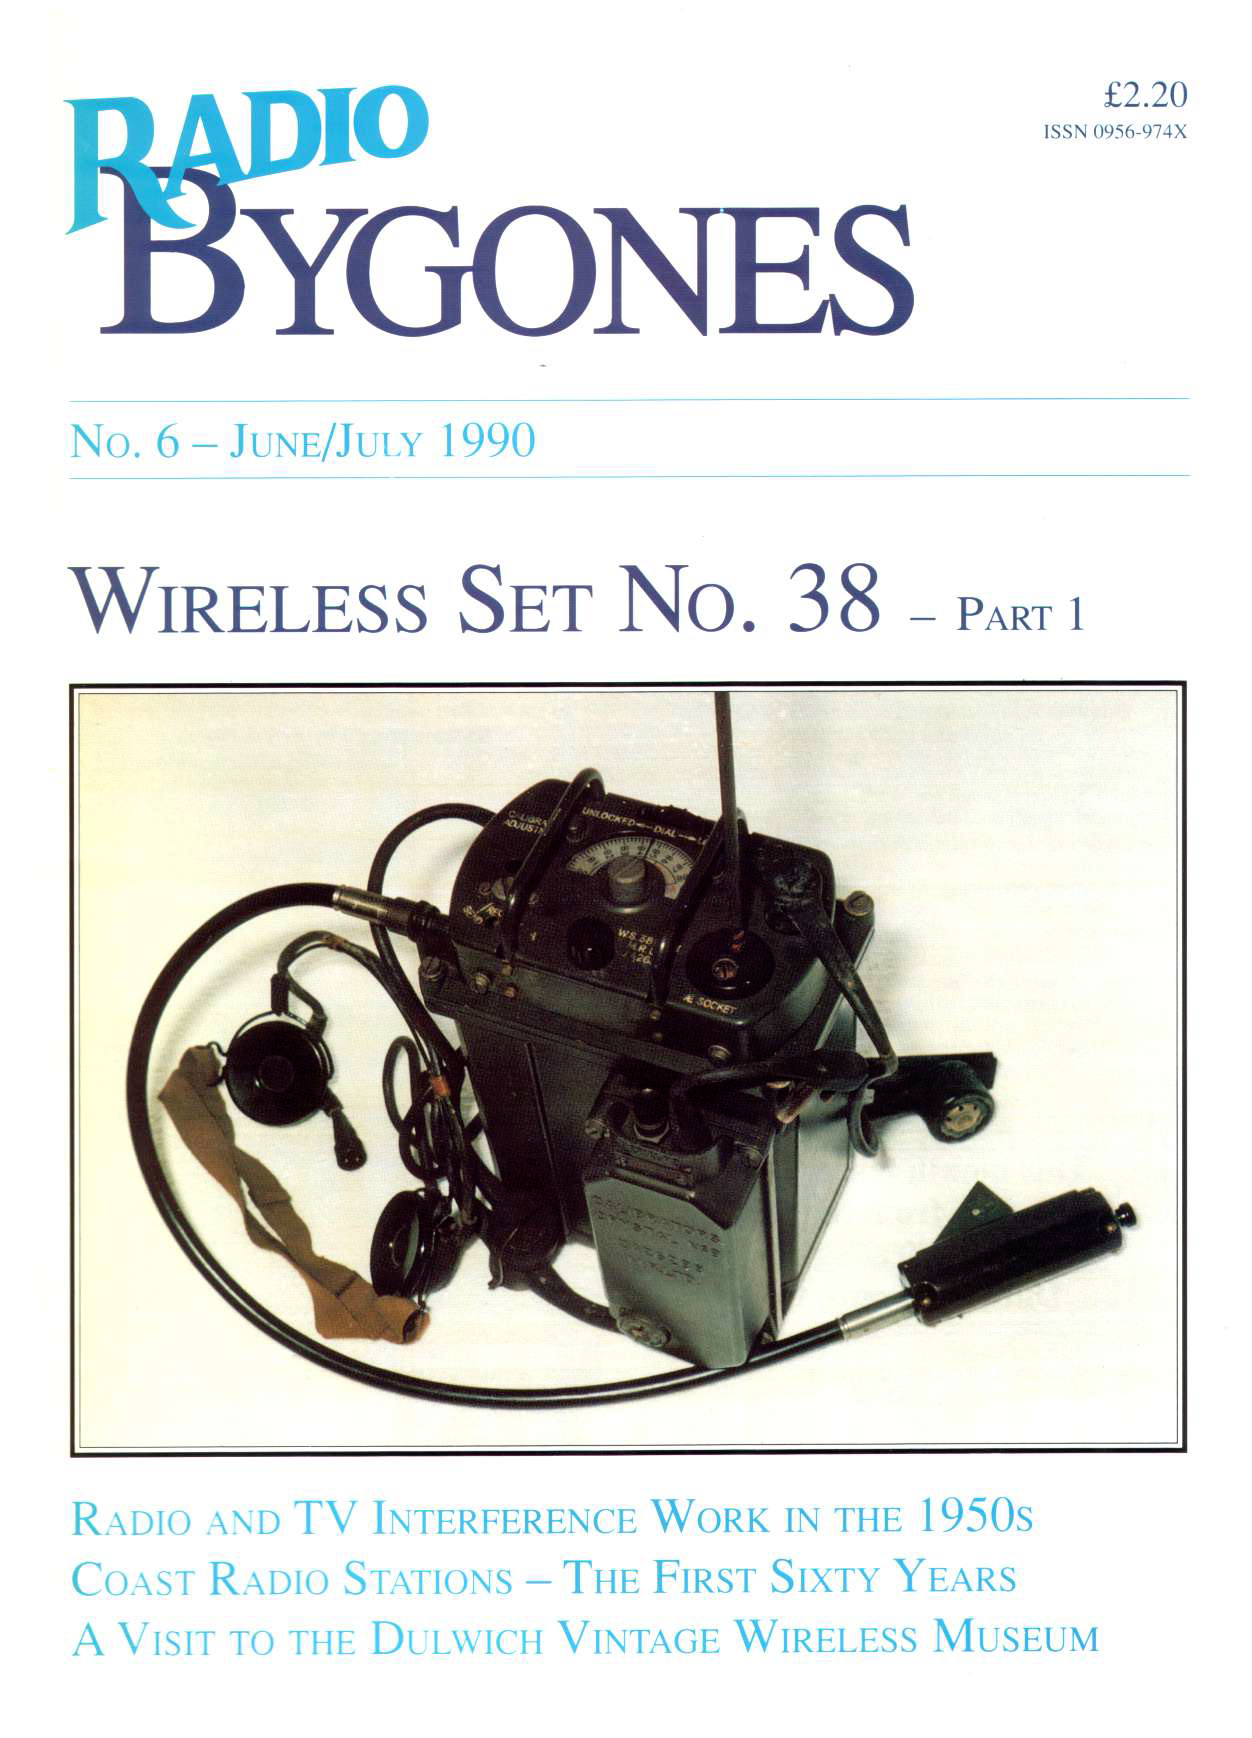 Radio Bygones Issue 6 - PDF